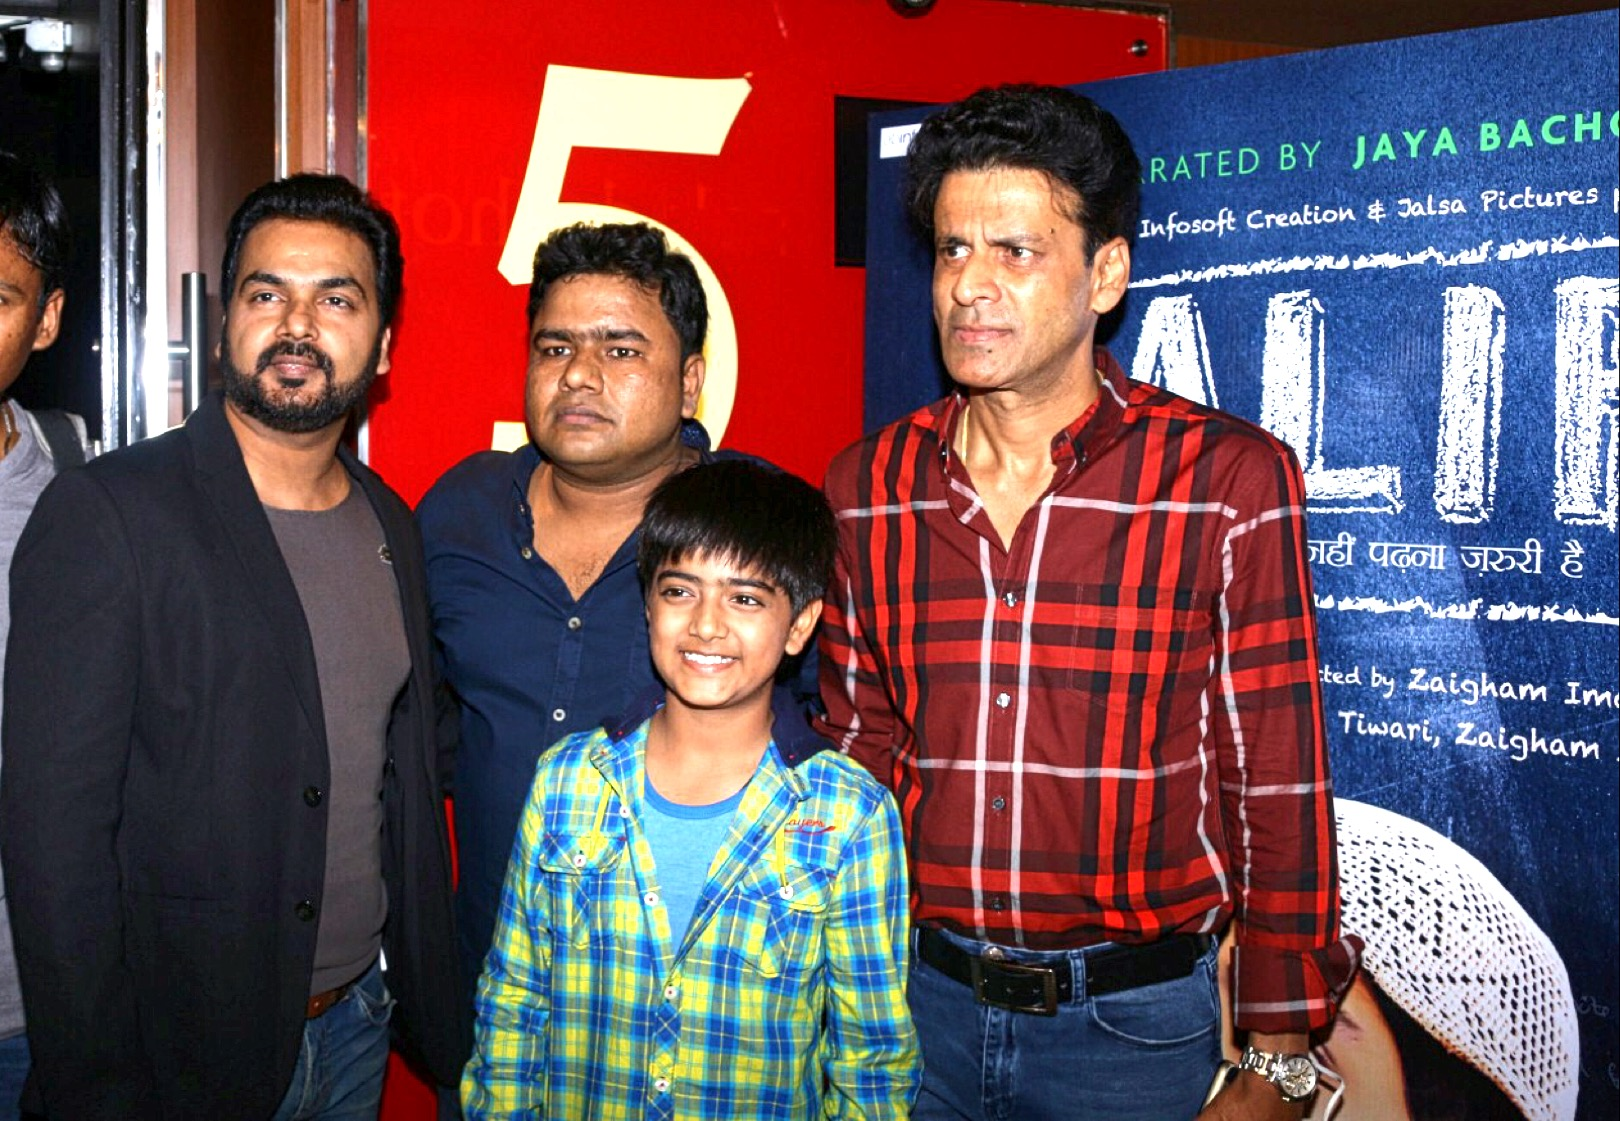 Manoj Bajpayee, Pawan Tiwari, and Zaigham Imam at an event for Alif (2017)